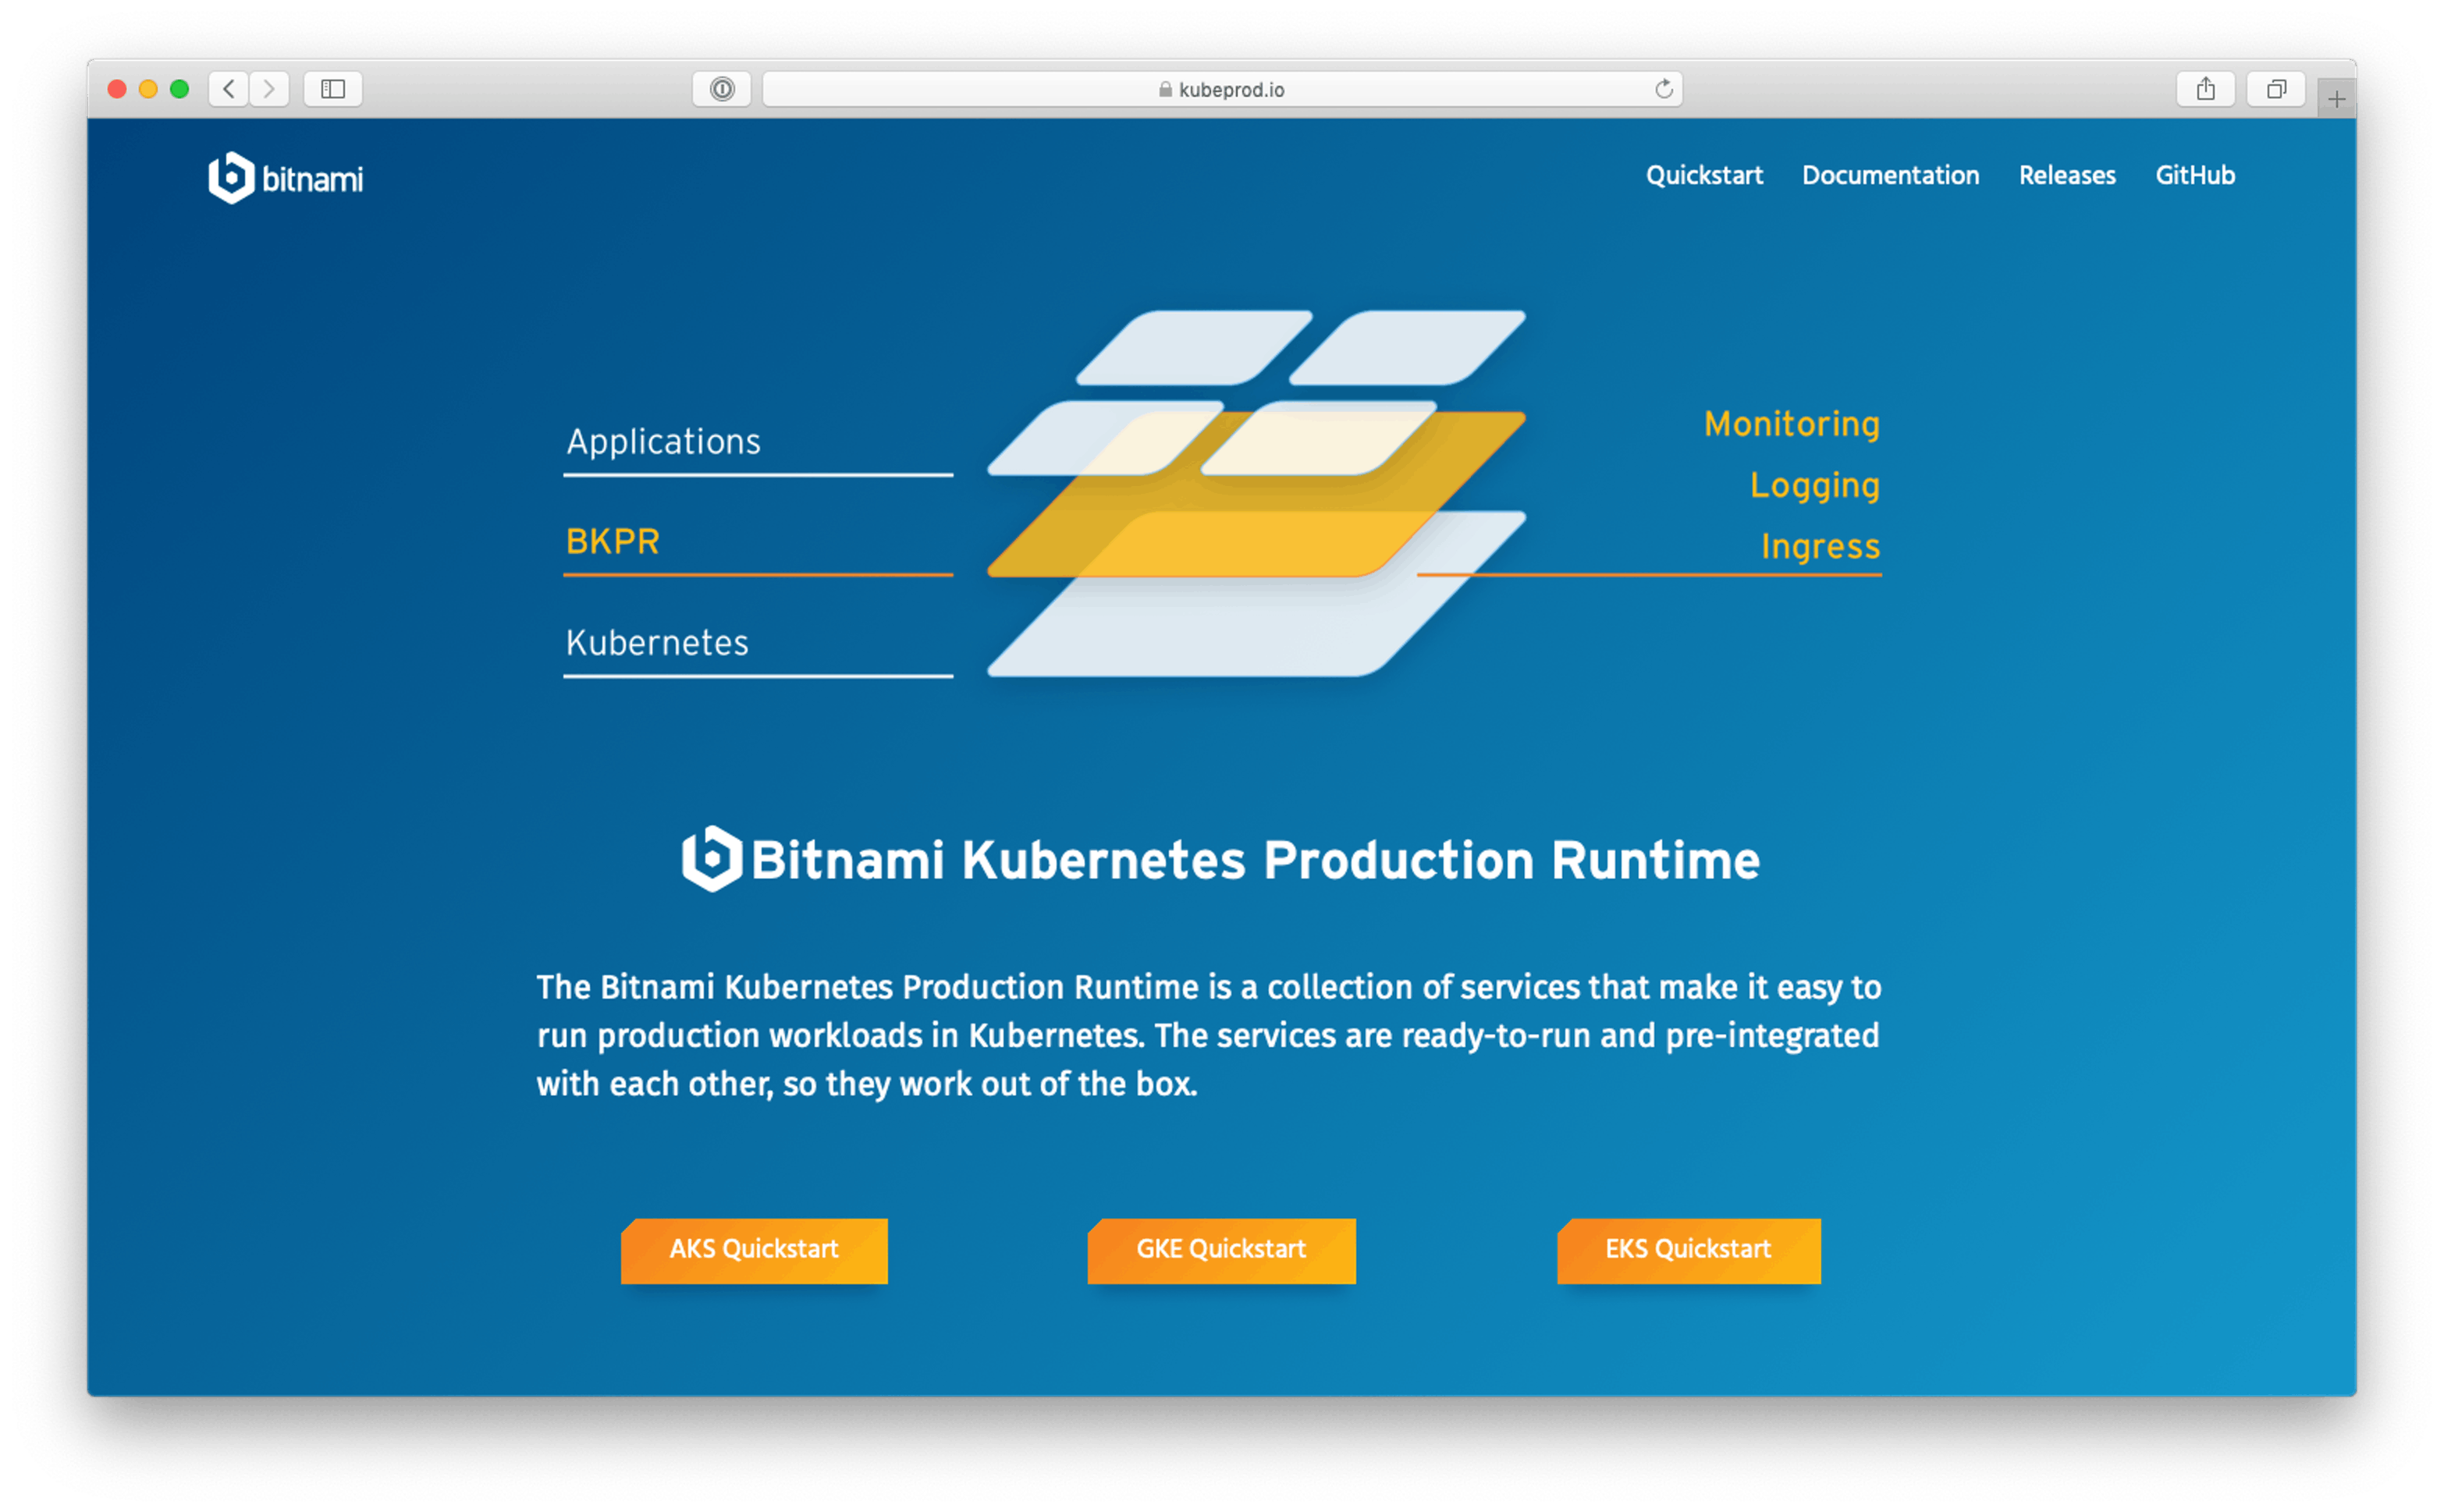 Bitnami Kubernetes Production Runtime (BKPR)